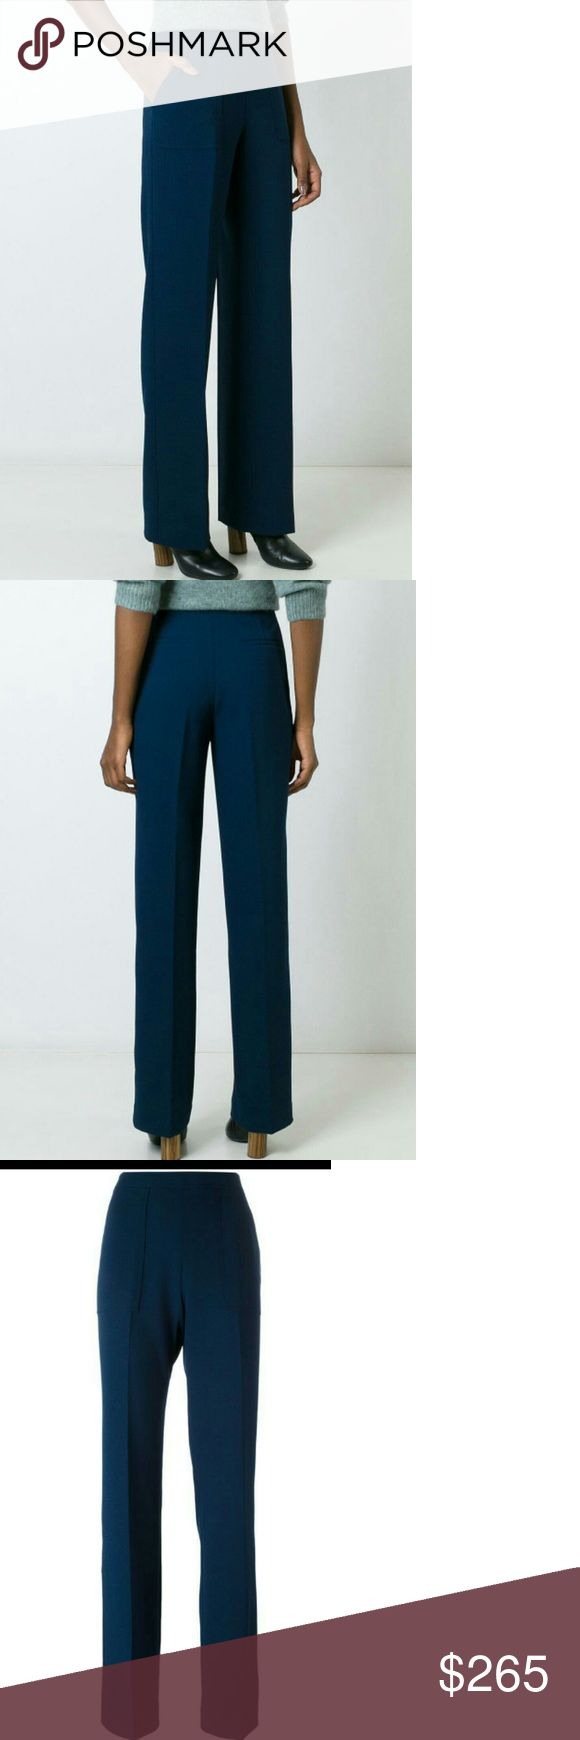 Tory Burch Women's Blue Trousers The Vanner trousers from Tory Burch are a perfectly tailored, classically elegant style that can elevate any workaday look. By: Tory Burch. Pattern: plain. Material composition: 67% cotton,28% lyocell,5% elastane. 67% cotton,28% lyocell,5% elastane. Color: blue Tory Burch Pants Trousers